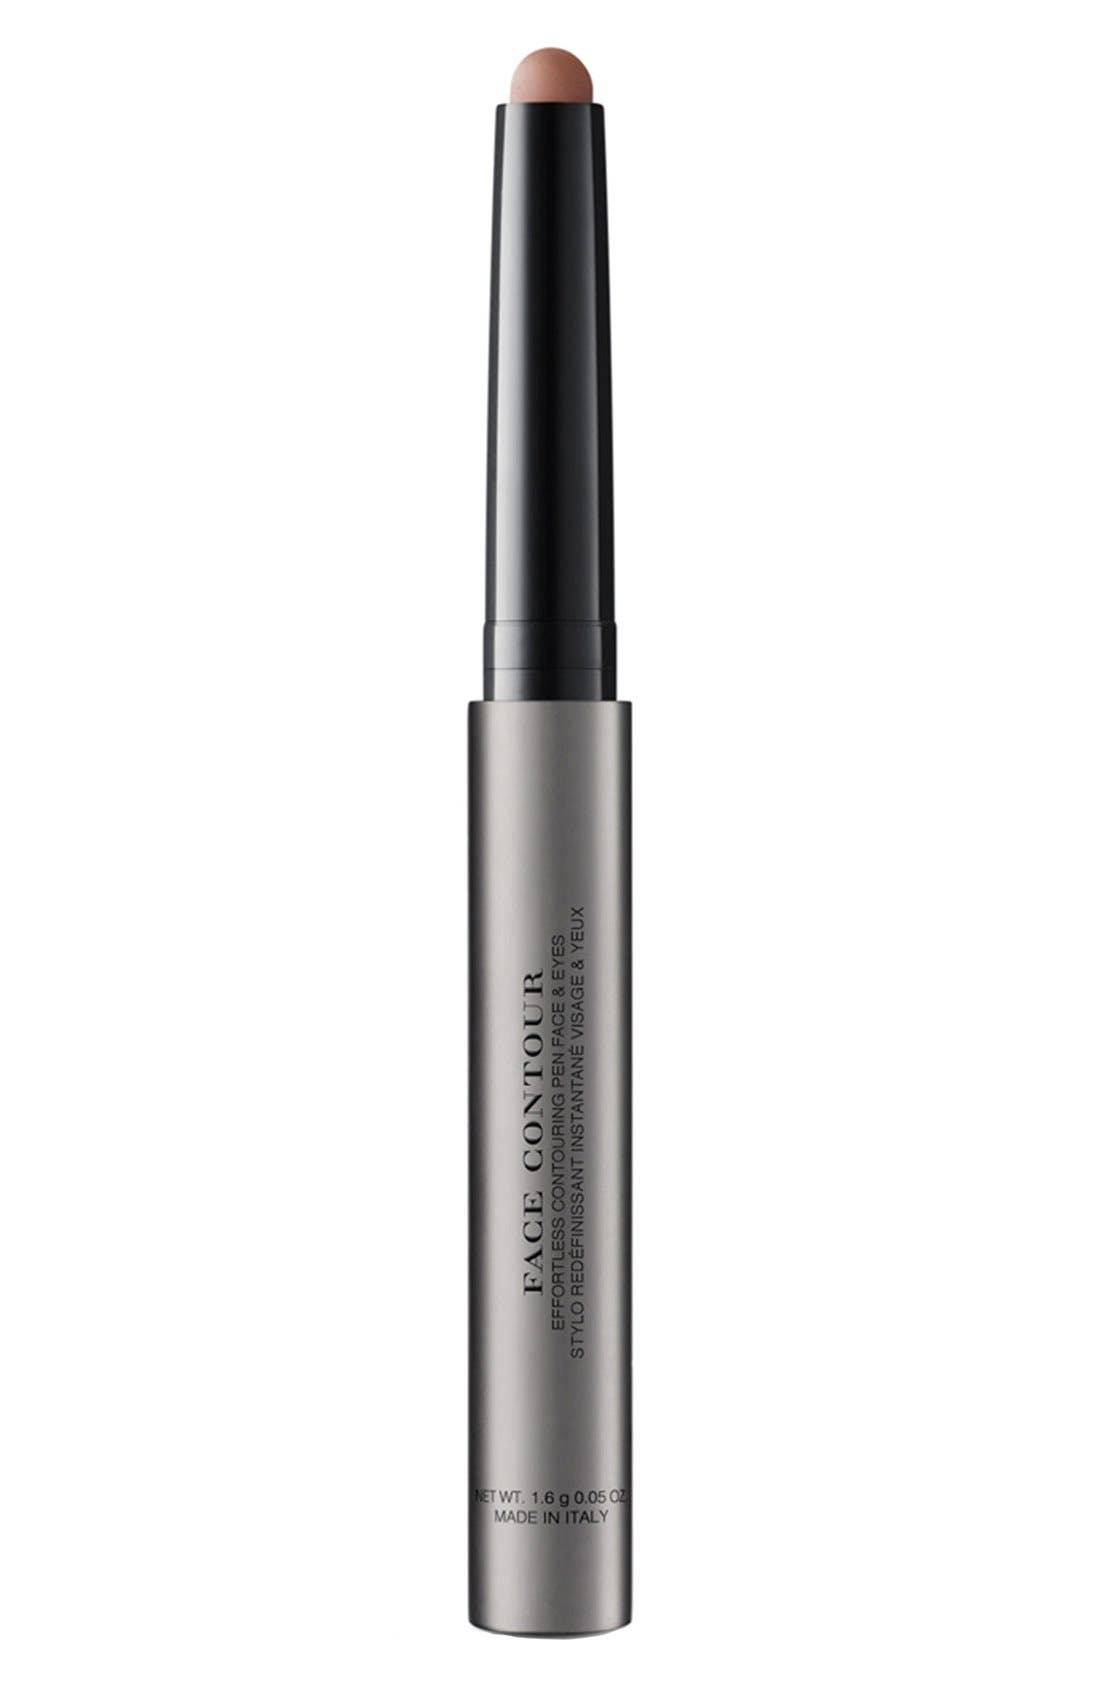 Face Contour Effortless Contouring Pen for Face & Eyes,                         Main,                         color, NO. 01 MEDIUM